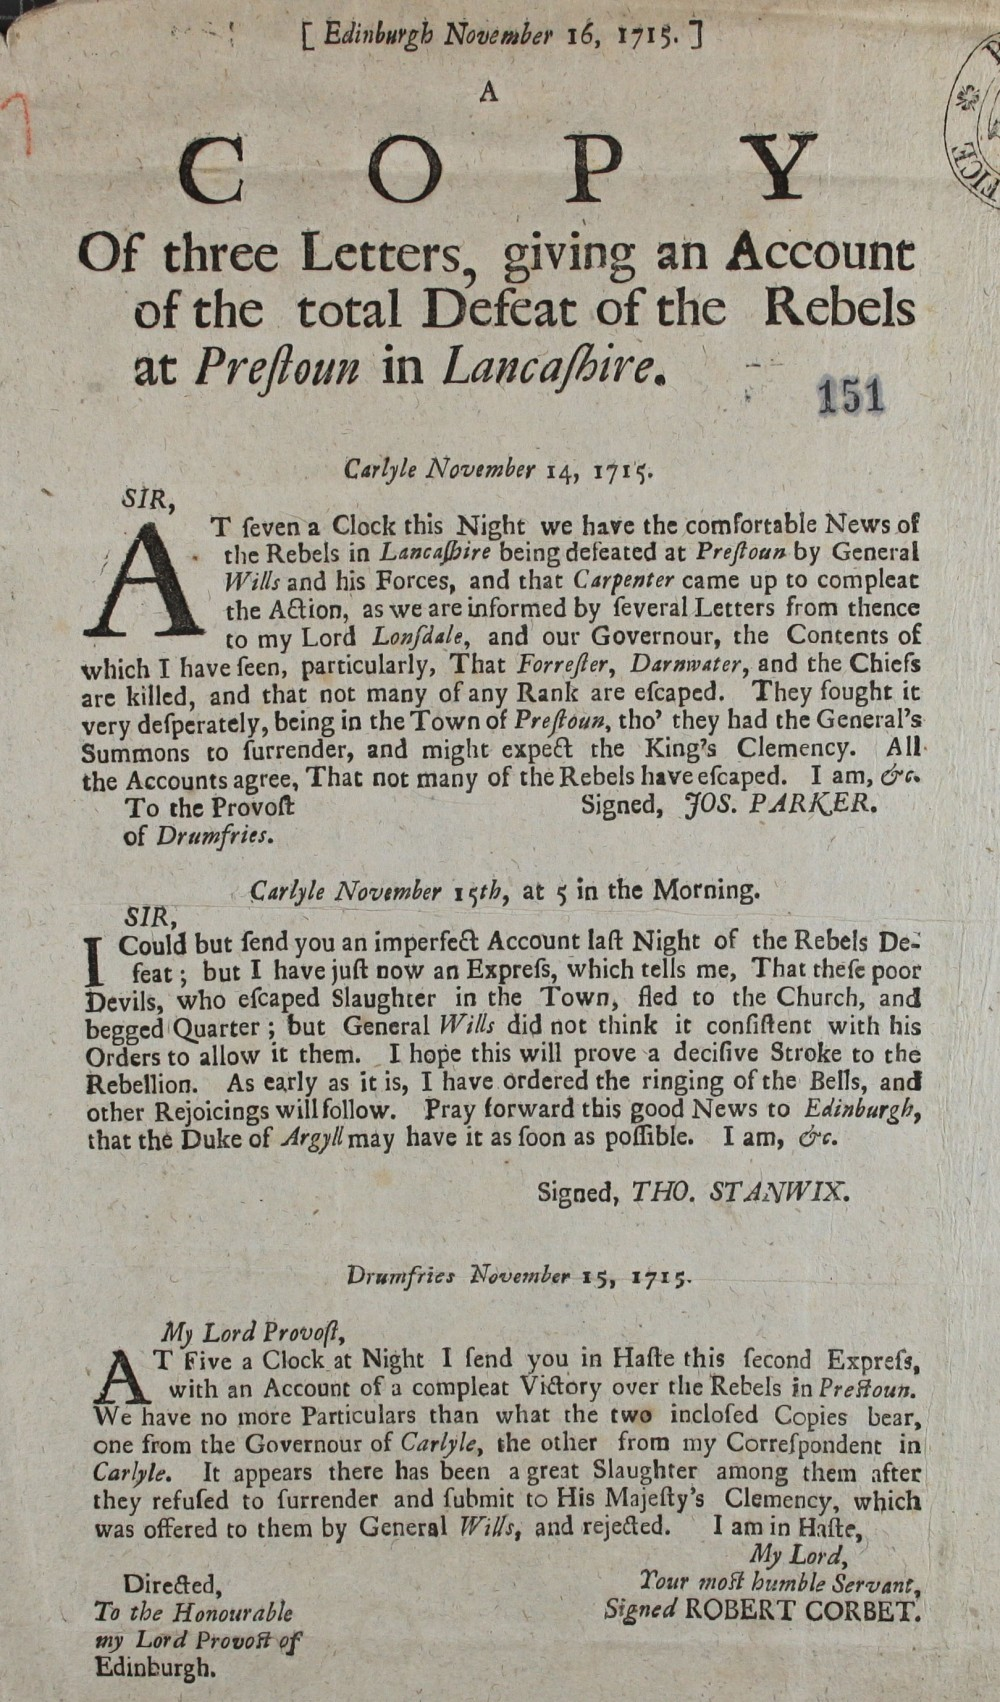 A pamphlet giving three accounts of the defeat of the Jacobites in Preston, Lancashire, dated from14th to 15 November 1715 (SP 54/10/57)